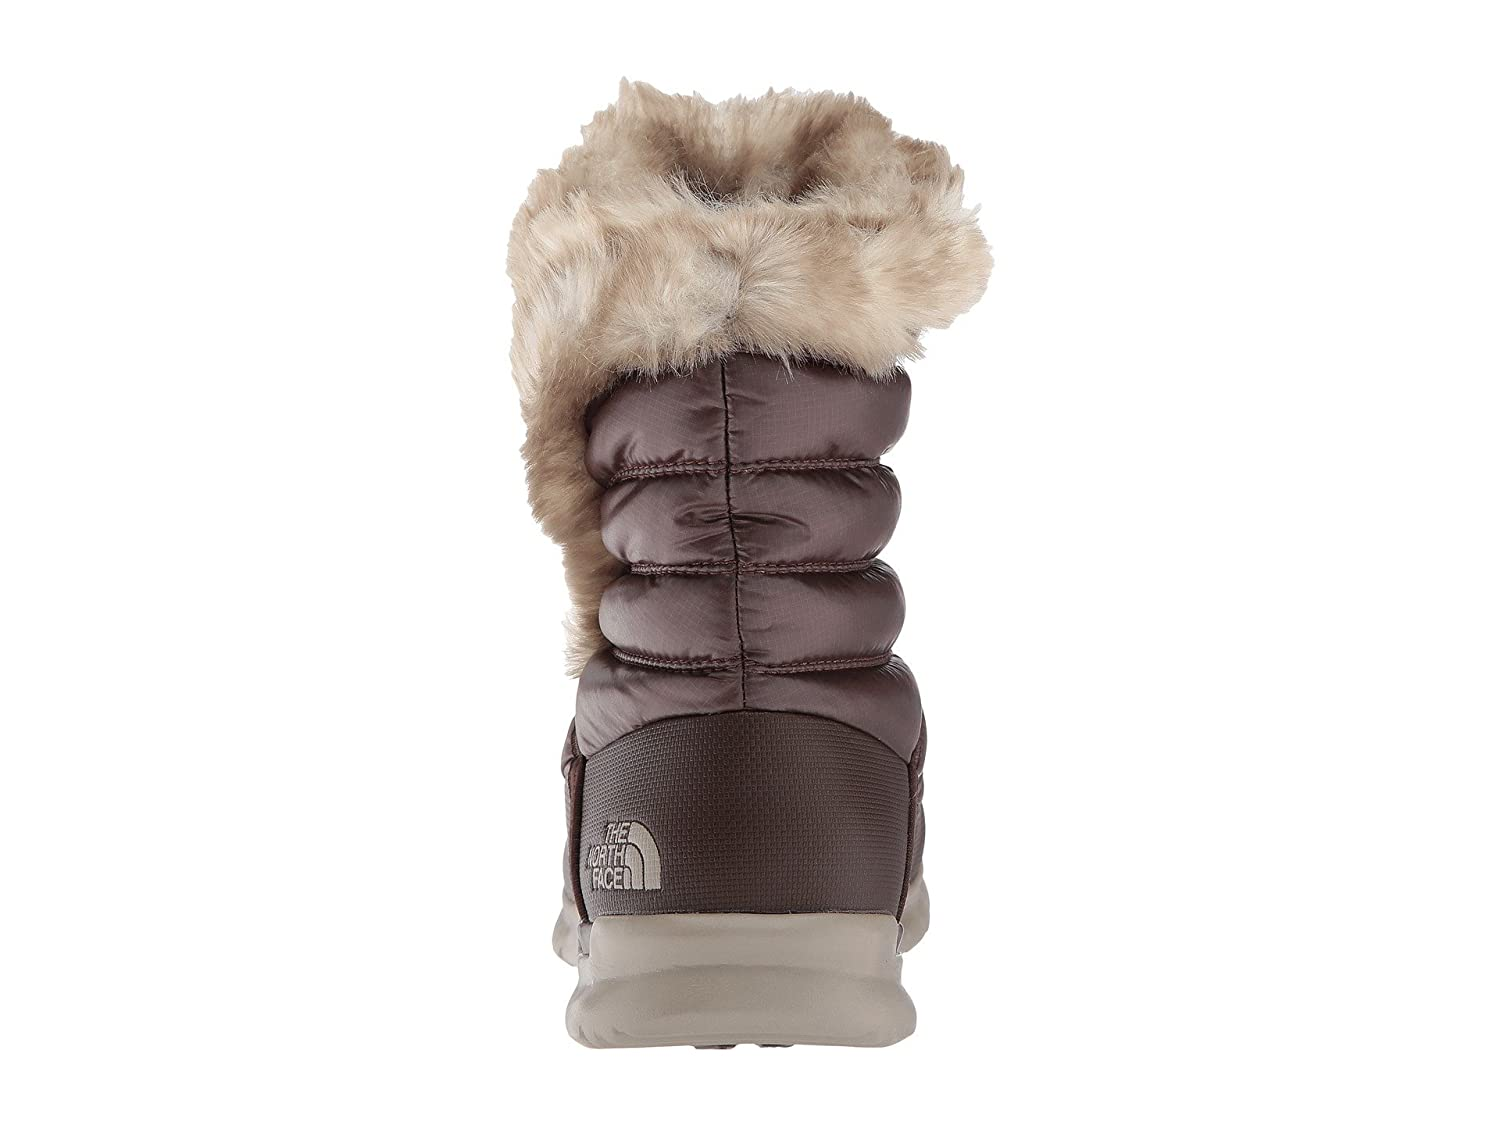 The North Face Womens Thermoball 5 Microbaffle Bootie II B01MXZZRZV 5 Thermoball B(M) US|Shiny Coffee Bean Brown/Dune Beige (Past Season) eadad6